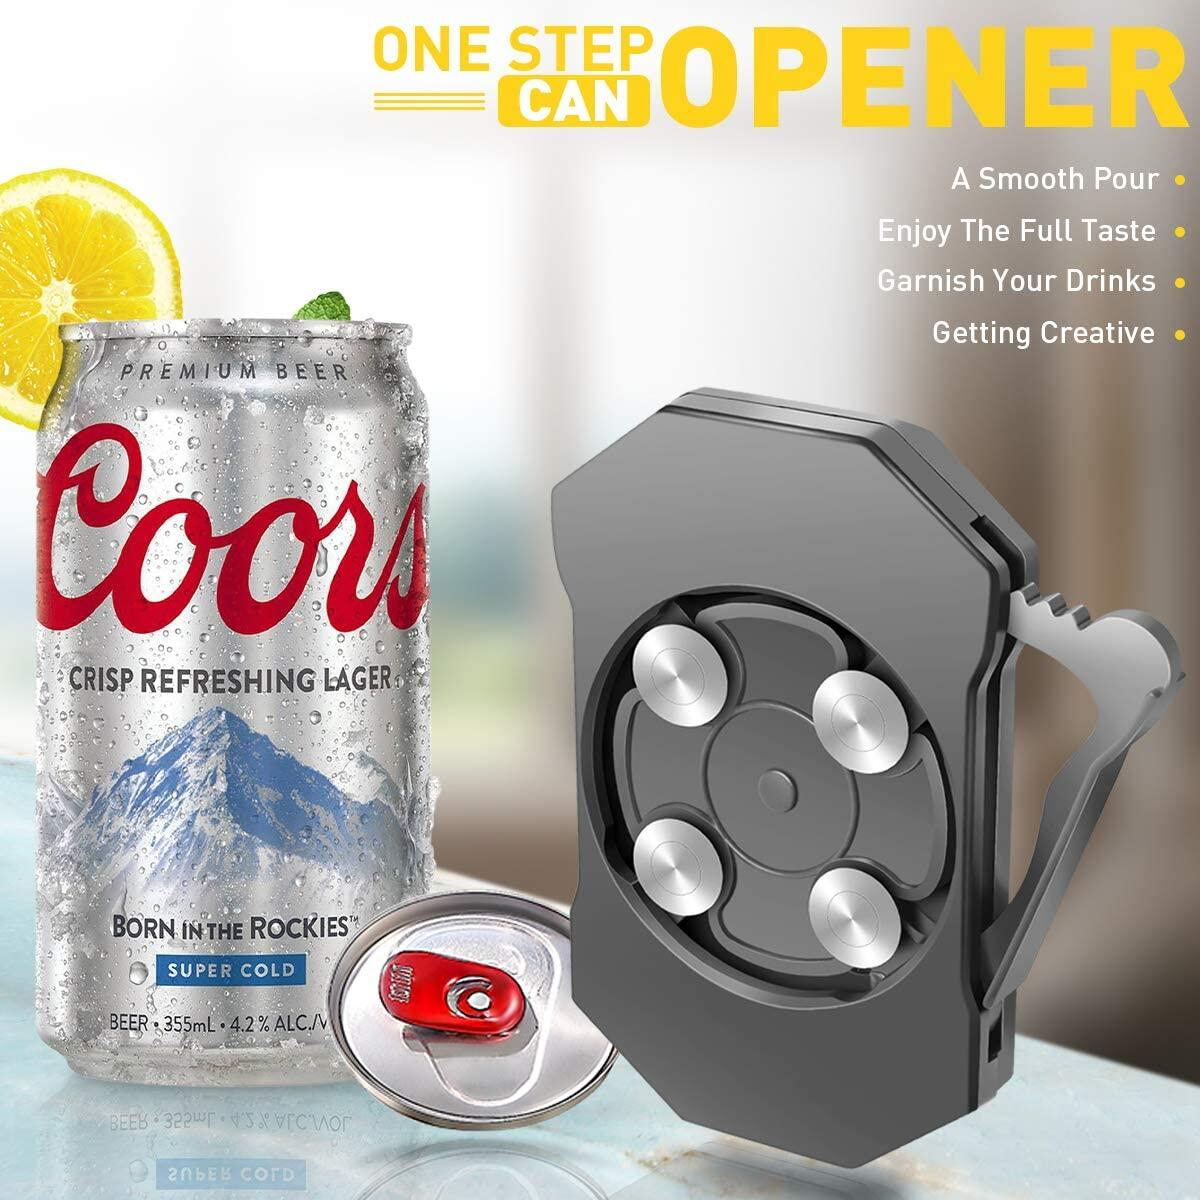 Beer Can Opener, Rip and Sip Can Opener, Soda Can Openers Topless Can Opener Can Top Remover, Go Swing Topless Can Opener, Beer Can Opener that Cuts Open the Top, No Sharp Edge